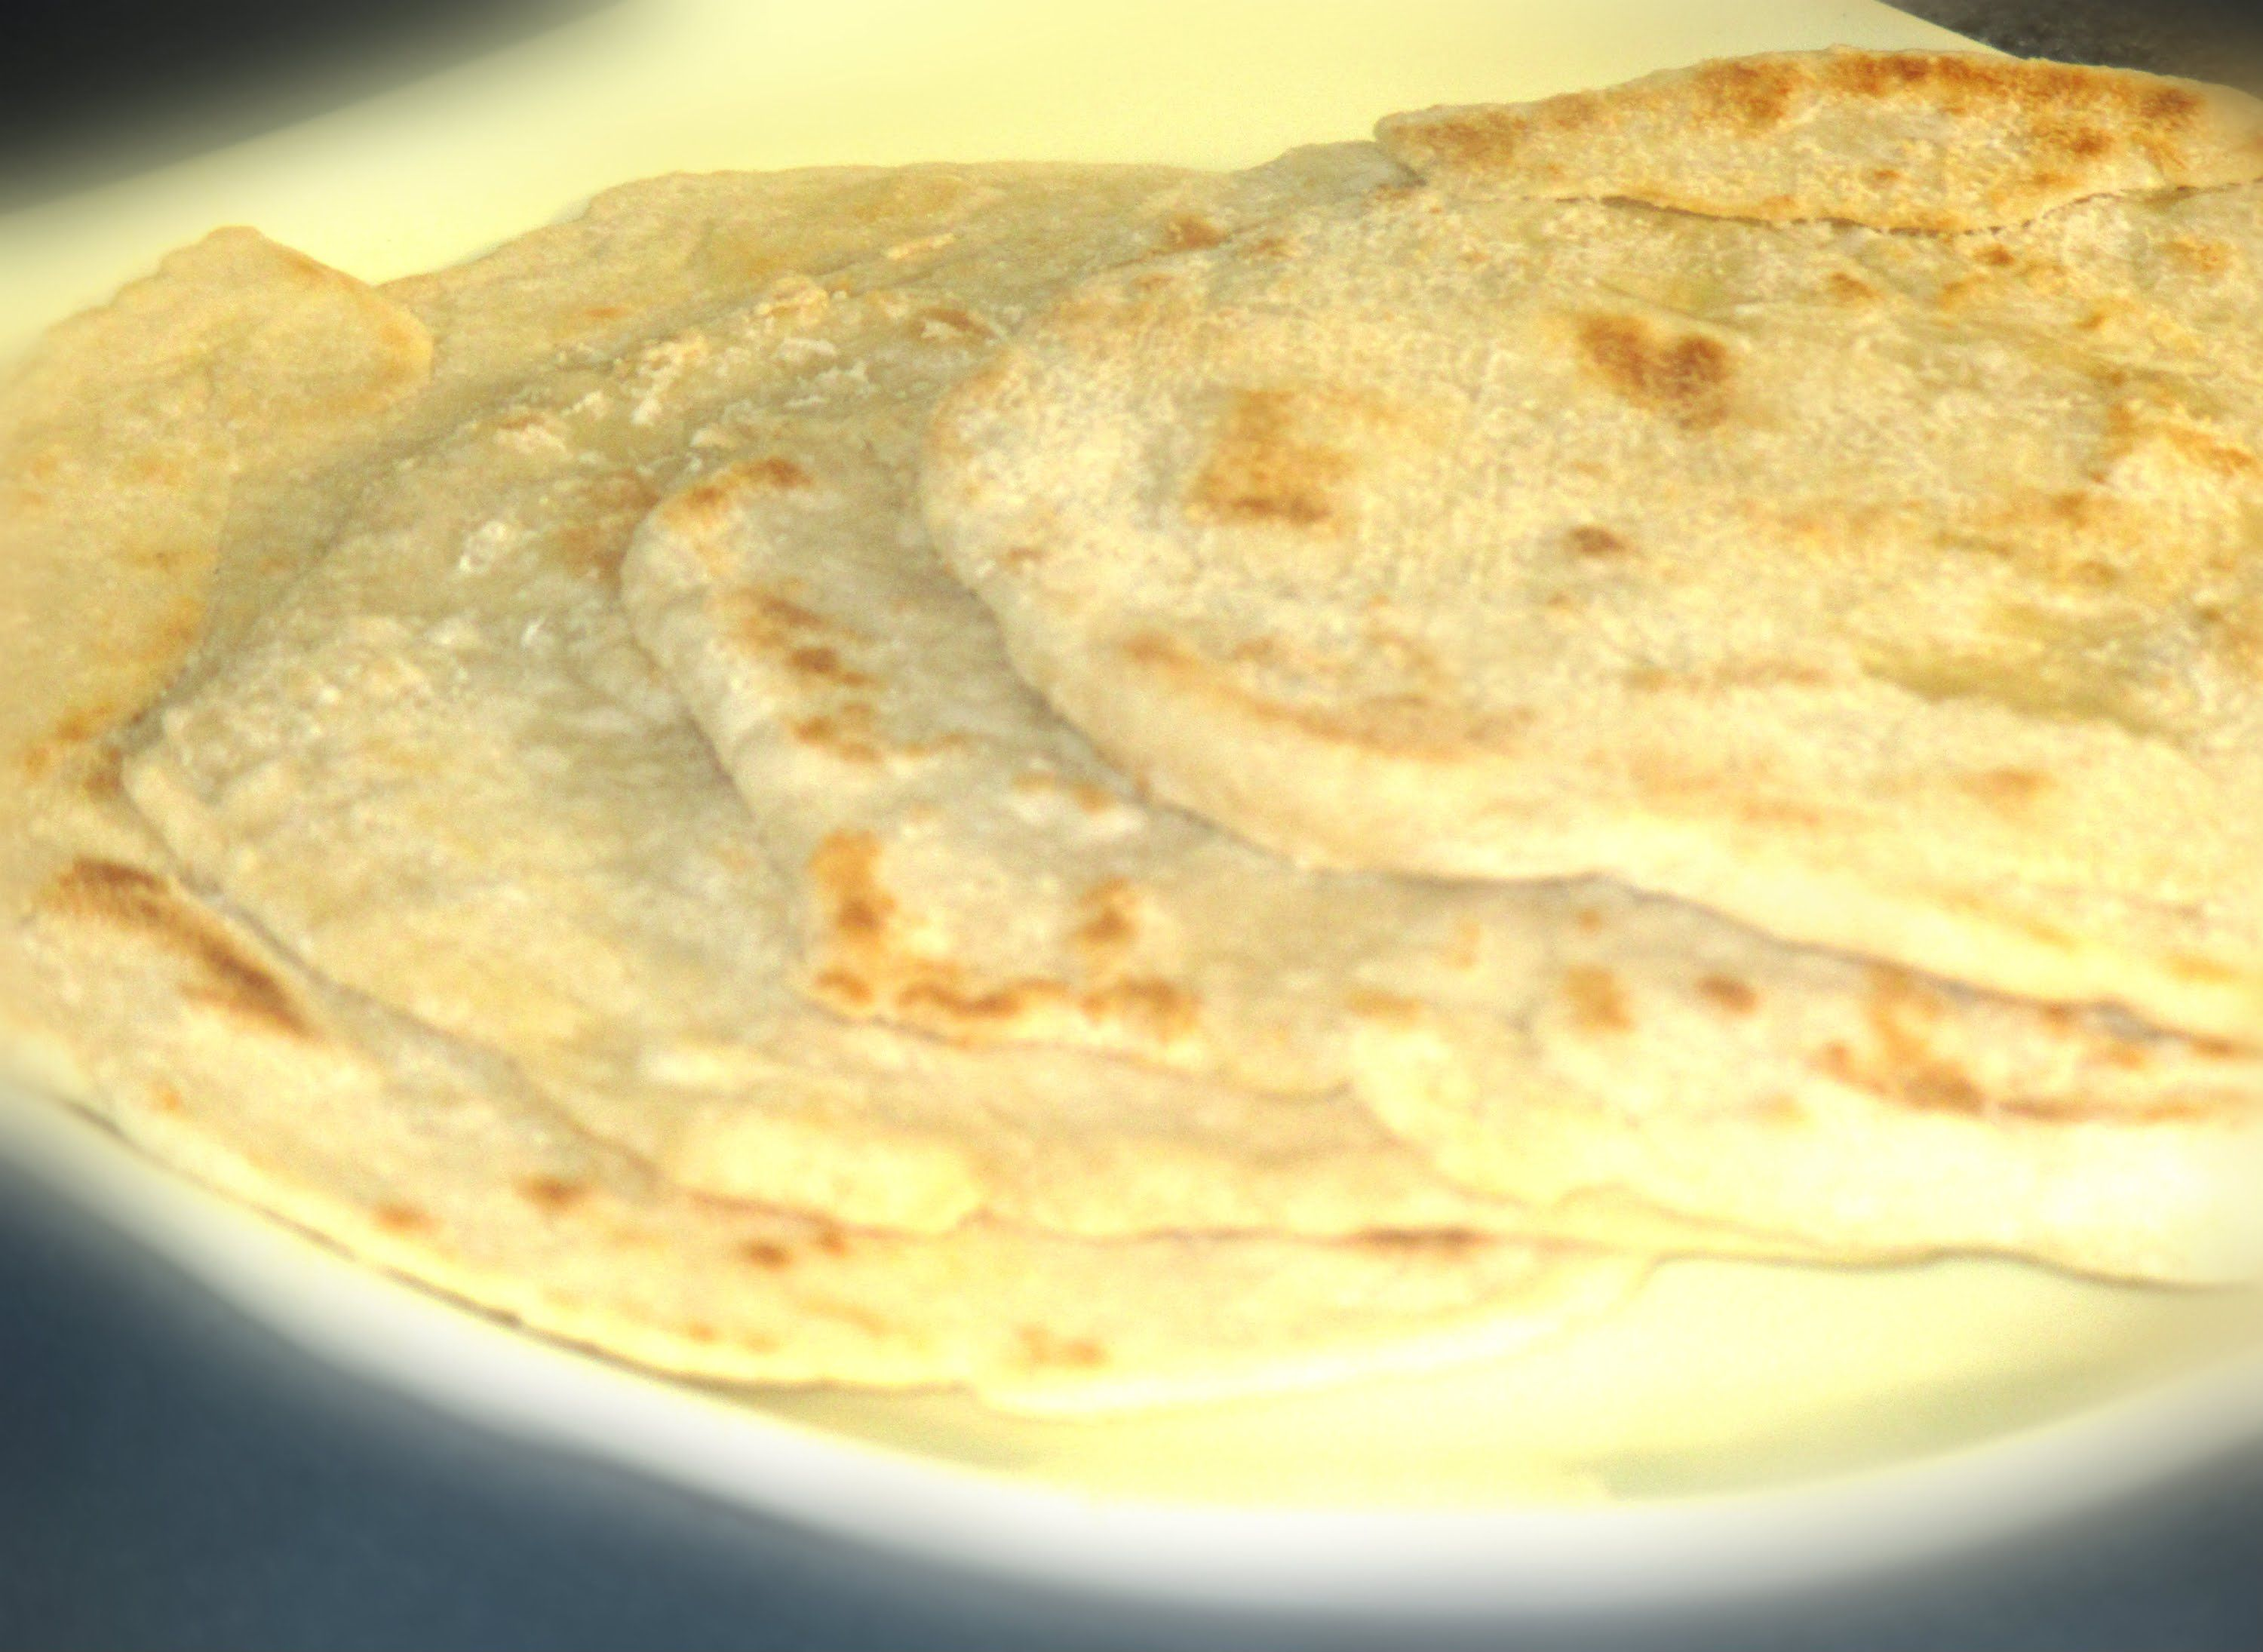 HOW TO MAKE REAL JAMAICAN ROTI RECIPE THE RIGHT WAY 2015 Hello Guys, Here is a easy recipe on how to make Jamaican Roti the right way. I hope this video wasn...